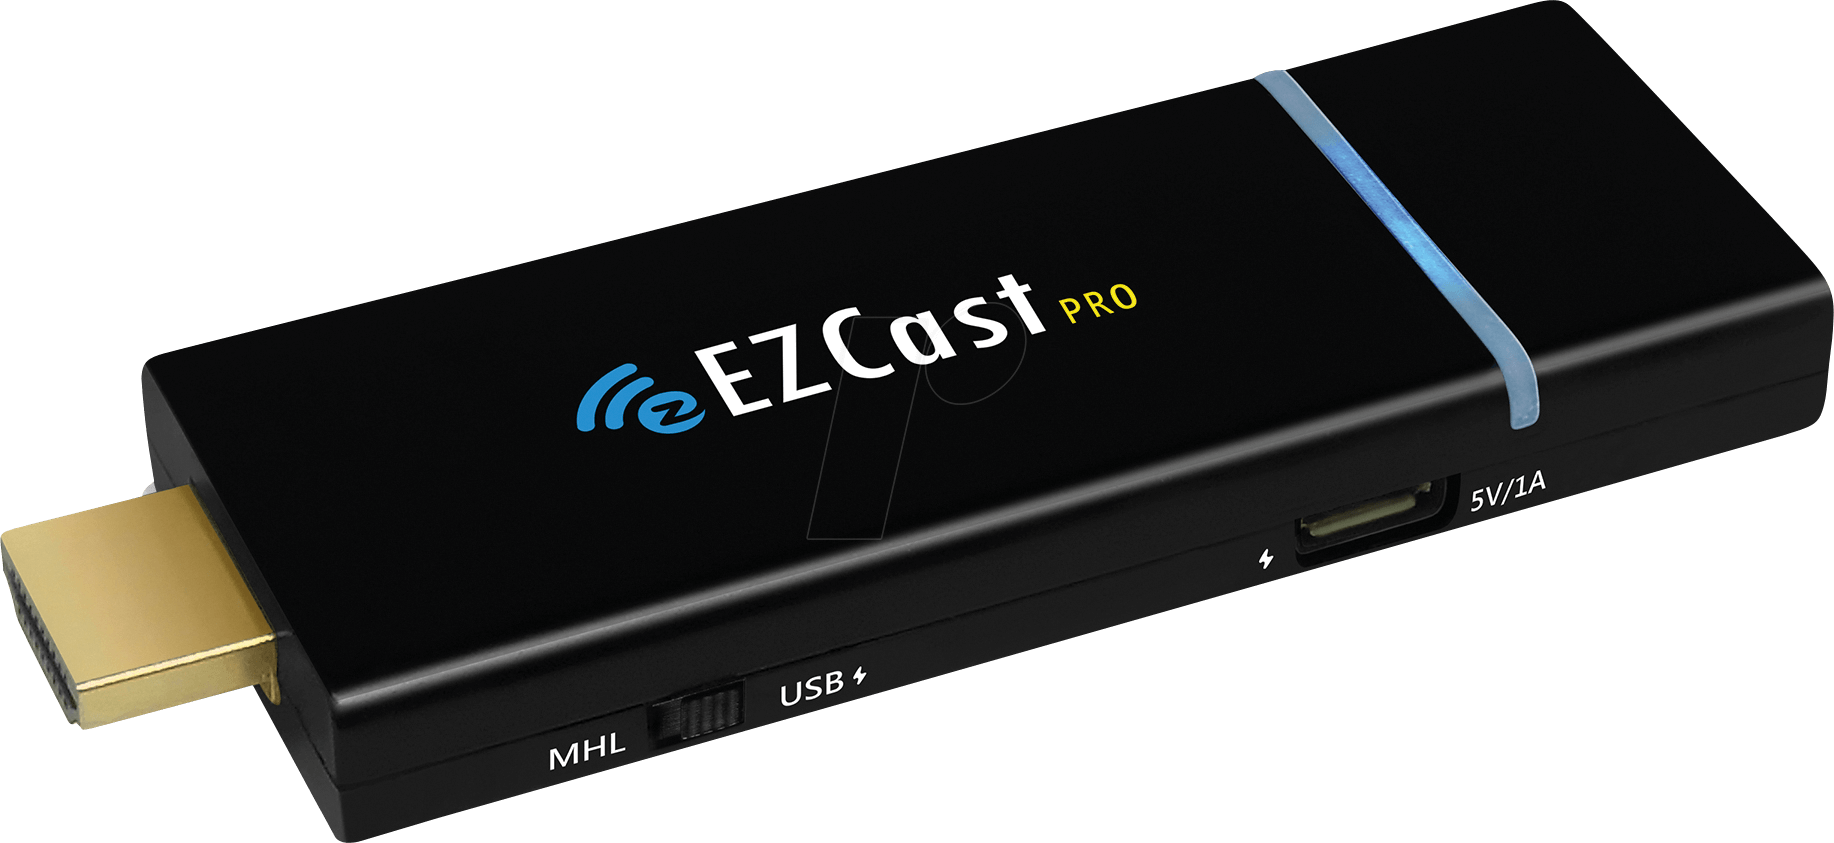 EZCAST PD01: HDMI - MHL Receiver Dongle at reichelt elektronik